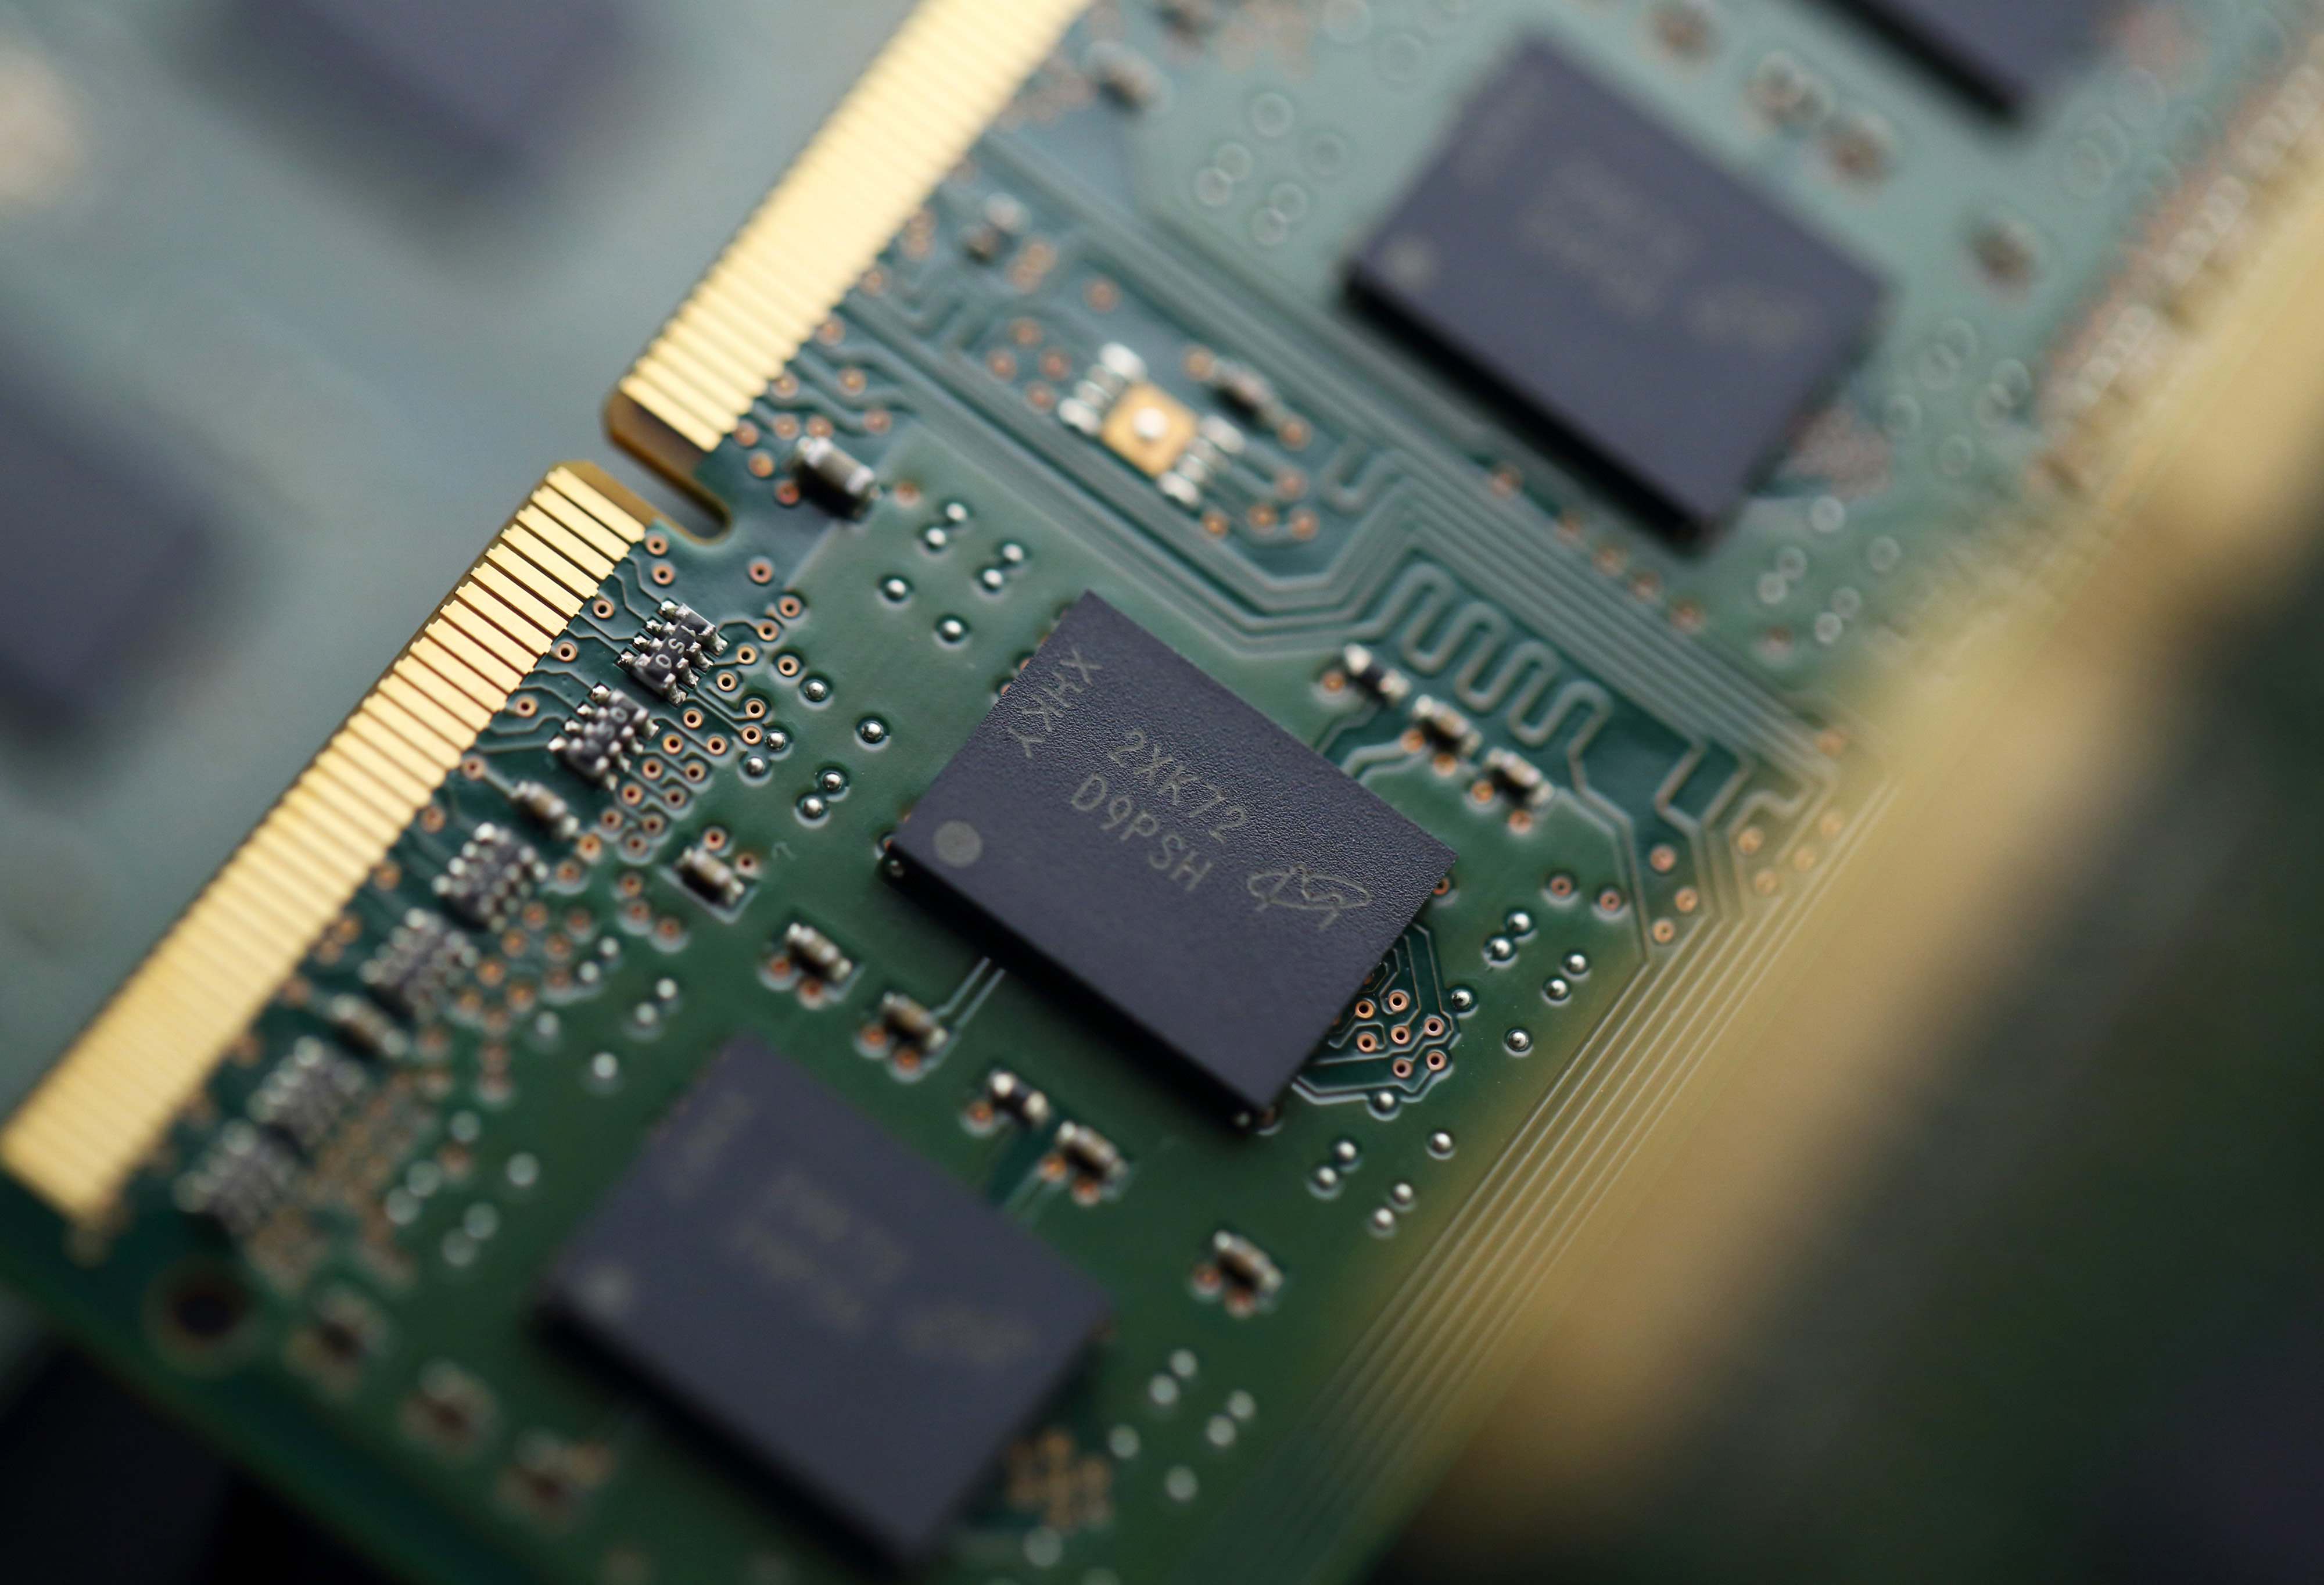 Micron Technology Inc. Memory Chips As China-Backed Takeover Bid Seen Facing Tough U.S. Review